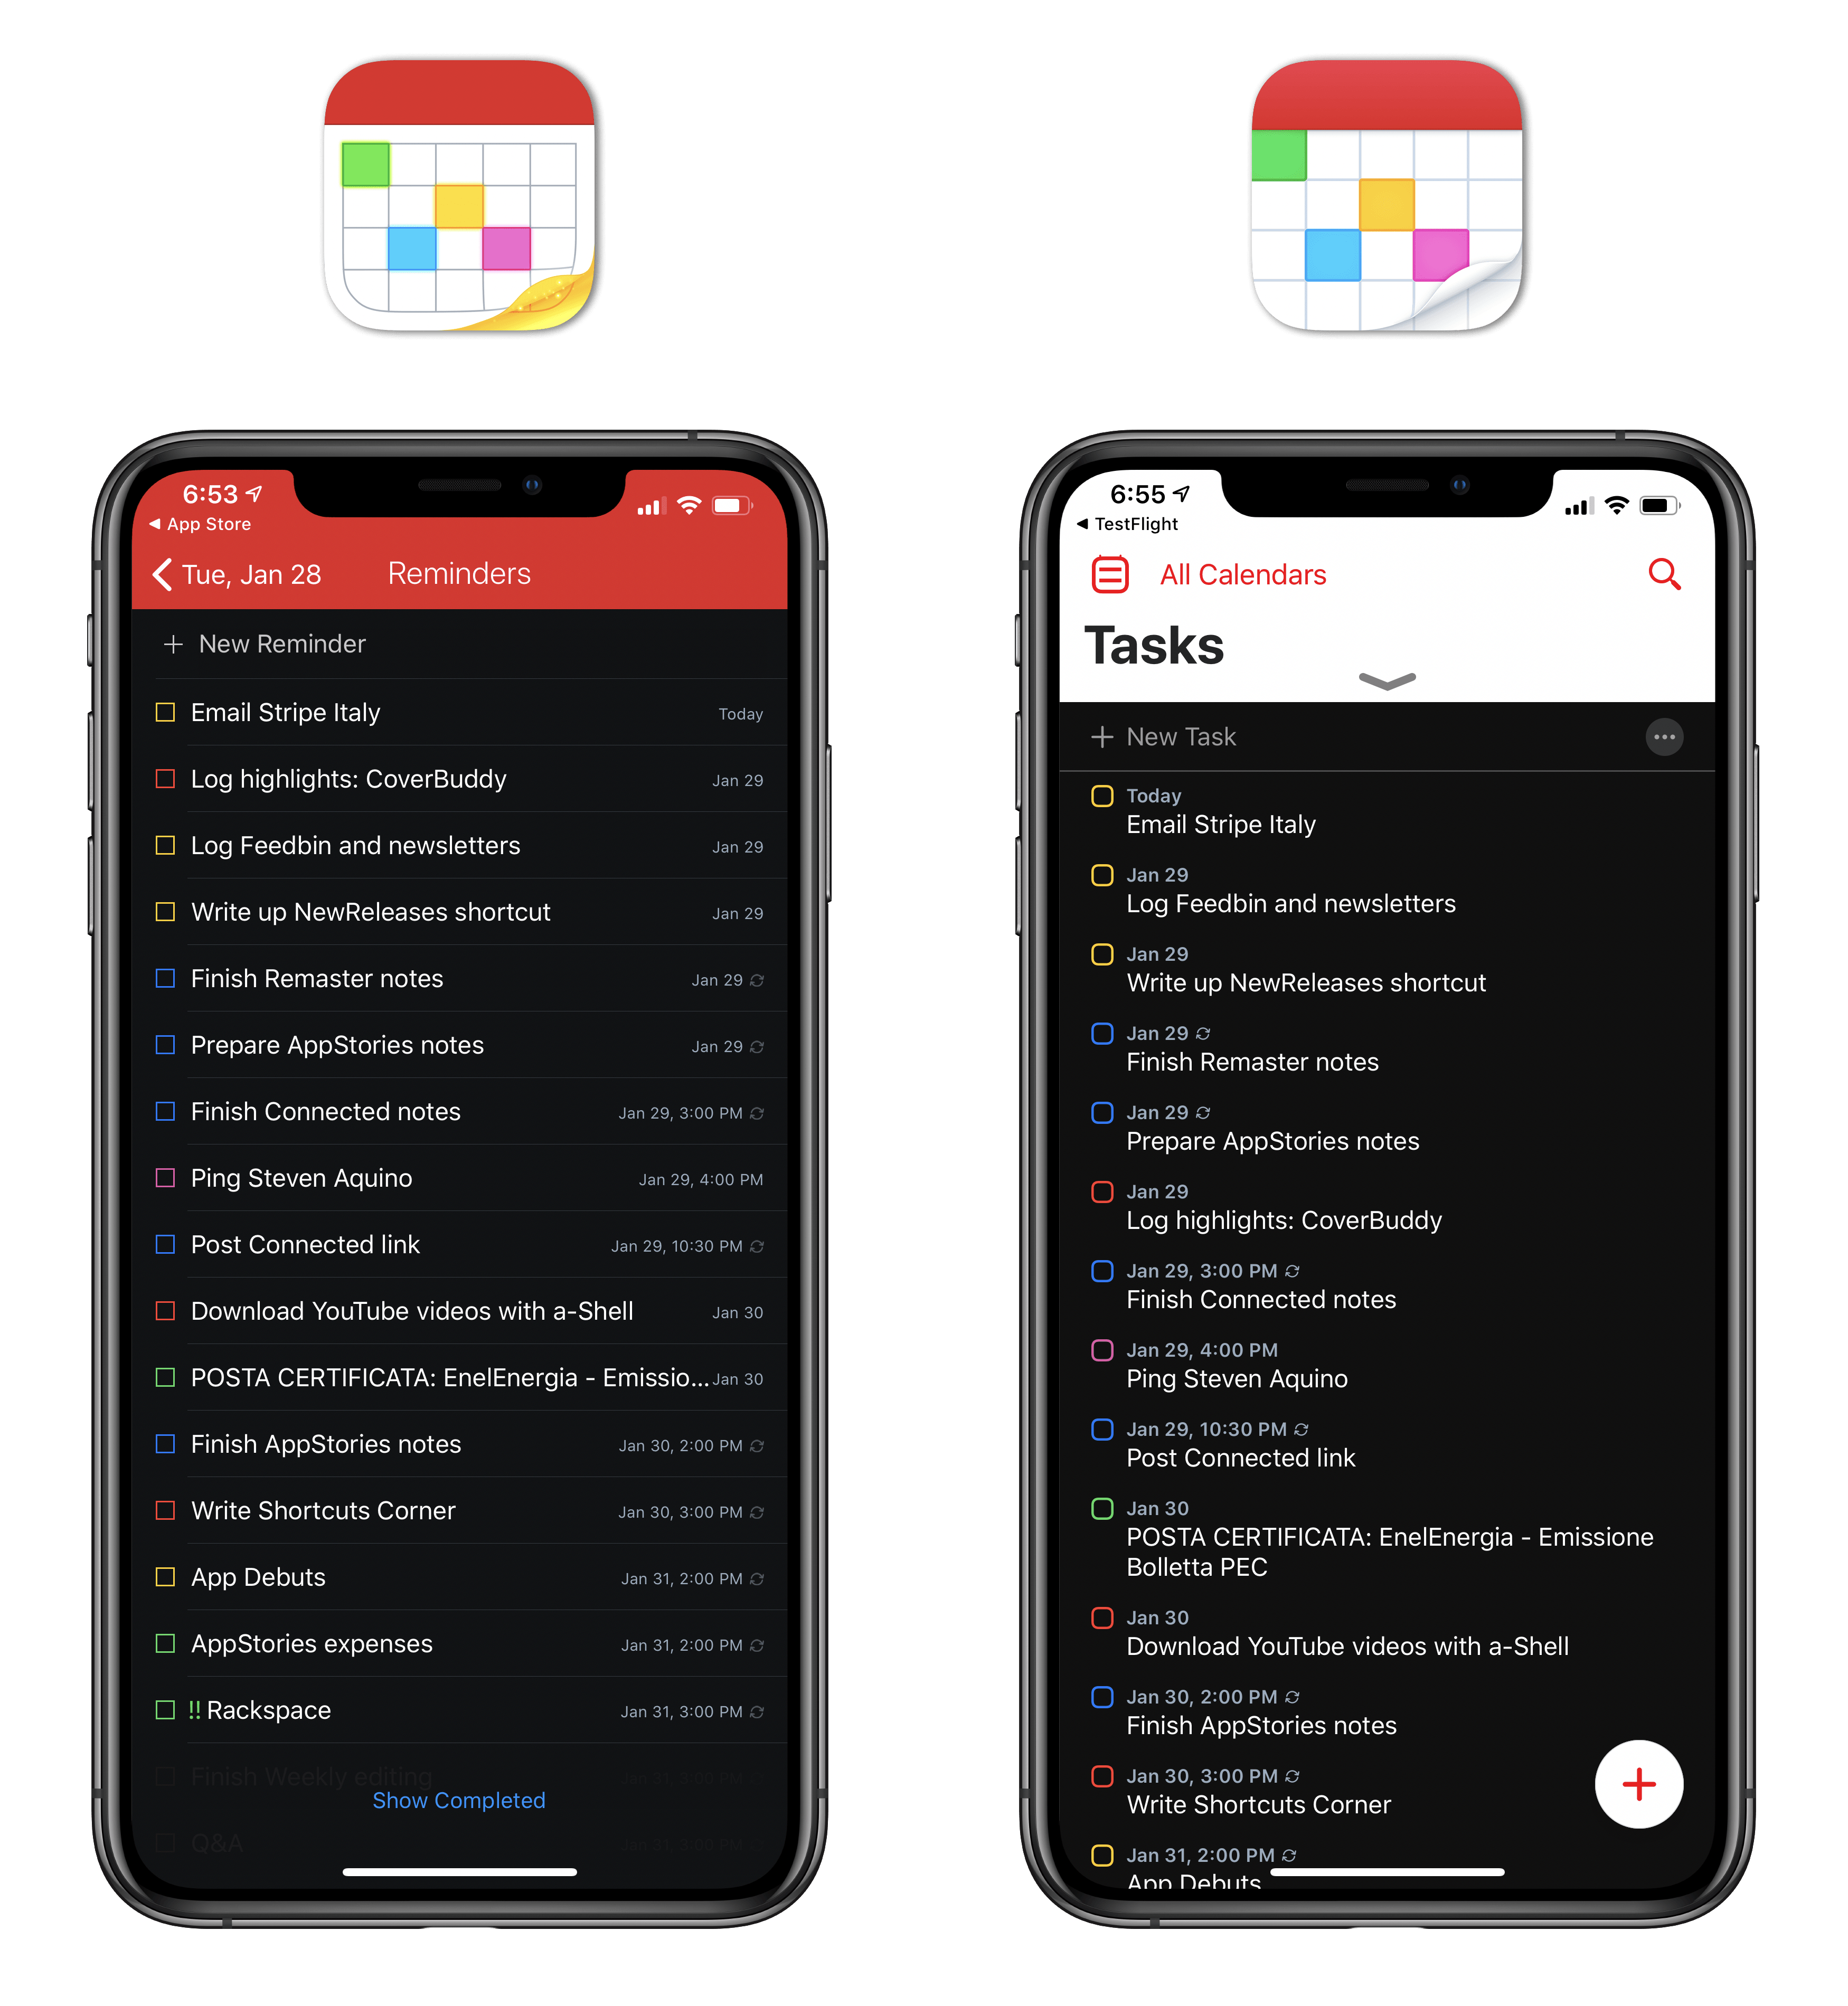 The updated Tasks view.